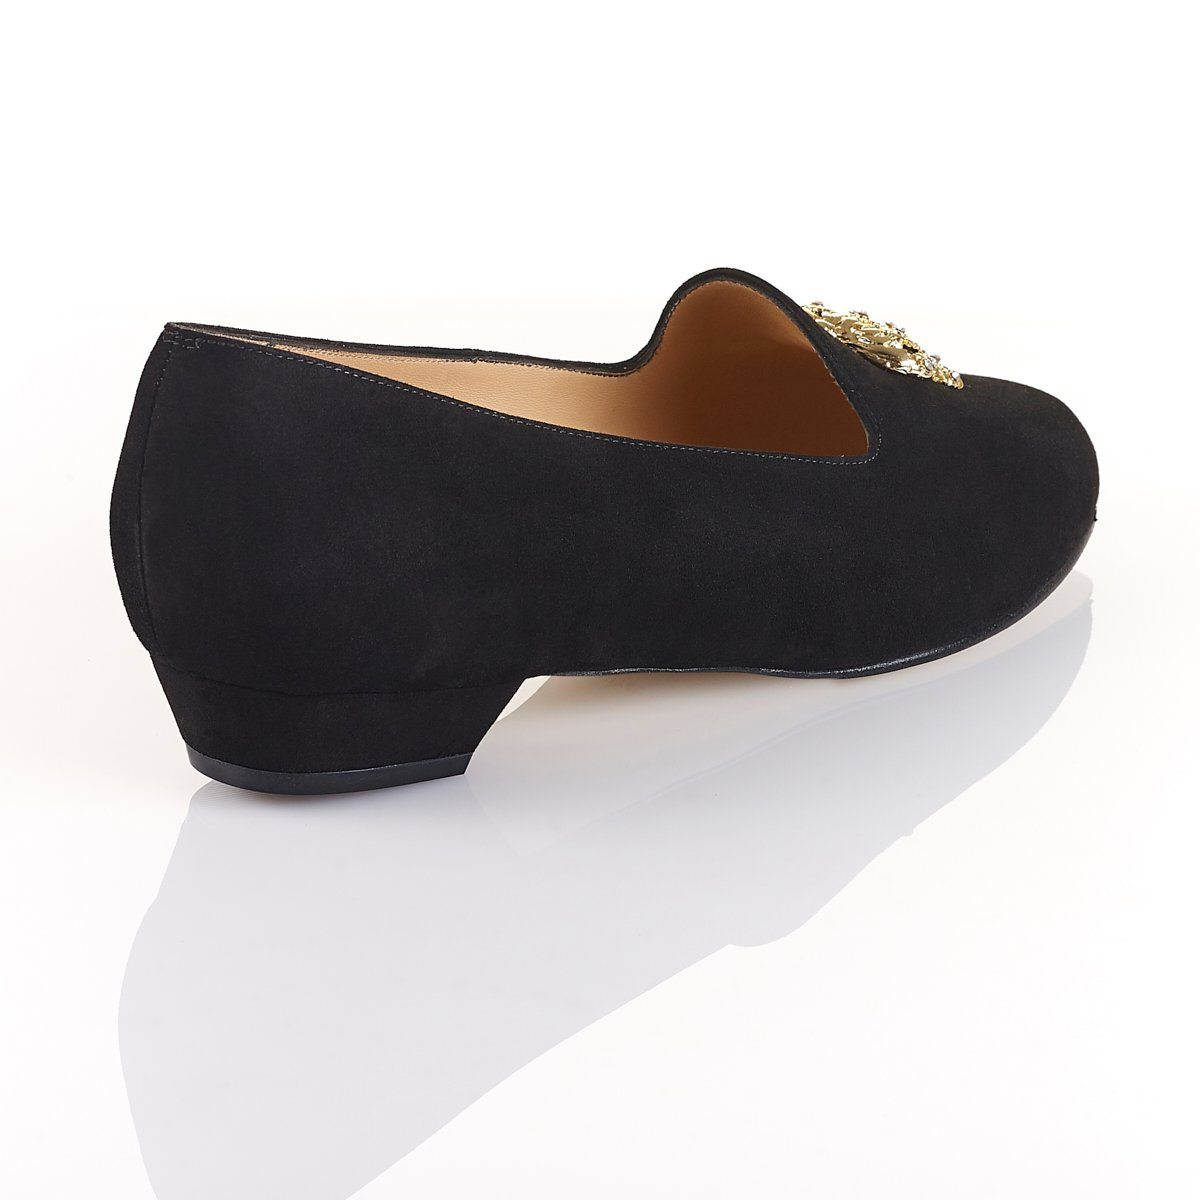 She Reigns - Luxury Flat Black Shoes - Shoes by Shaherazad